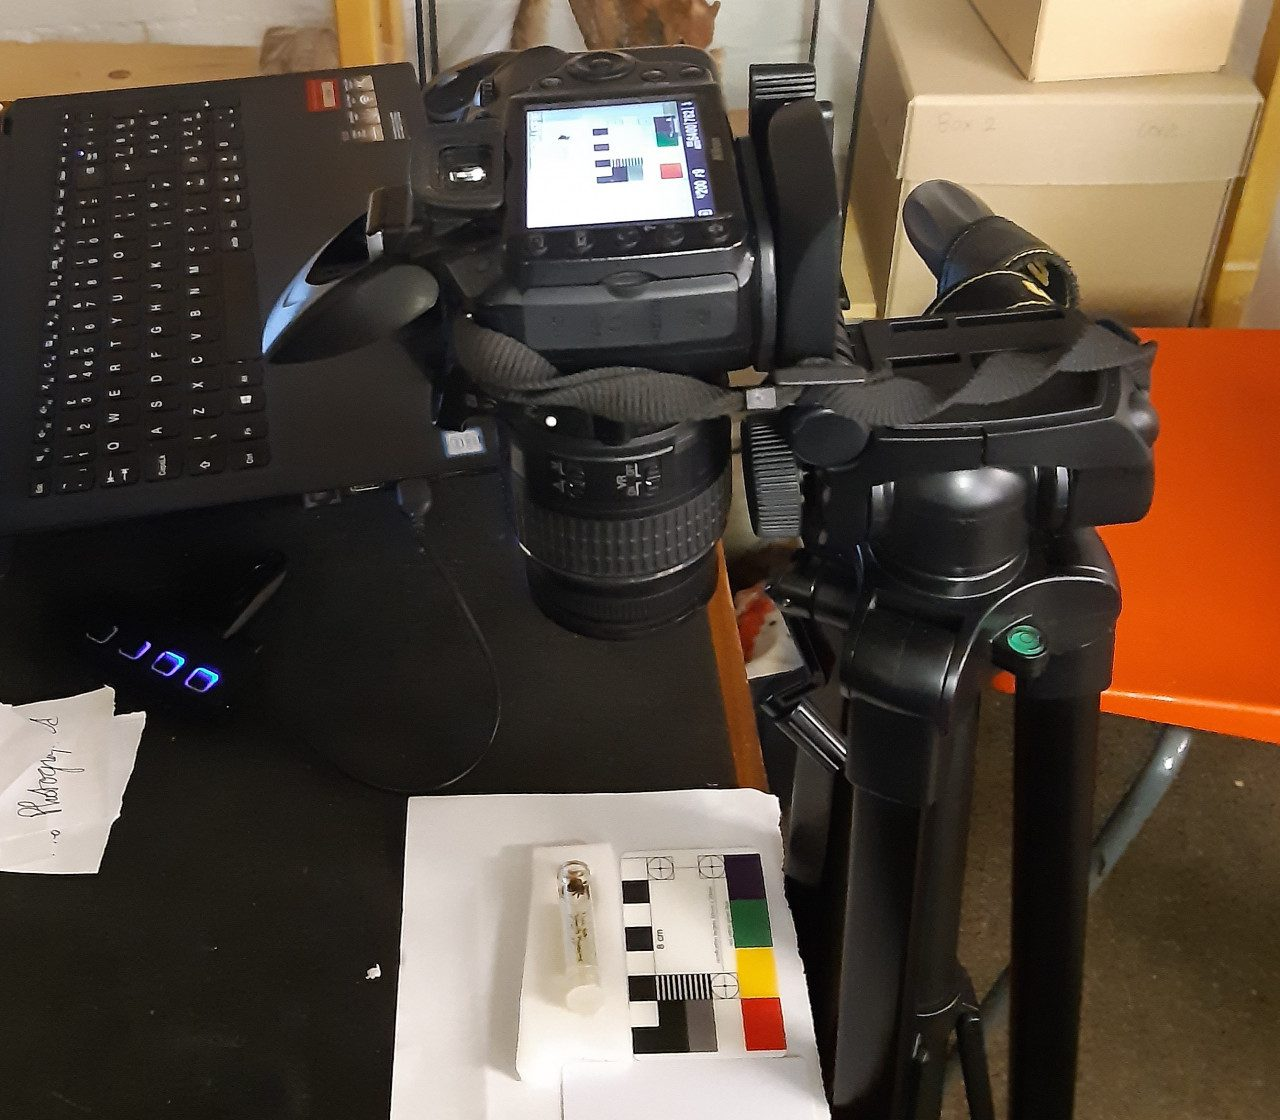 A picture of a camera set up. A DSLR camera mounted on a tripod angled with the lens facing the desk surface. Under the camera on the desk is a white piece of paper with a scale bar and colour chart and resting on a white rectangular piece of plastazote, a glass tube containing a spider and its label, which is the subject of the image being taken by the camera. A laptop keyboard and a pile of cut out labels are also on the desk; the labels all have 'Photographed' written on them.